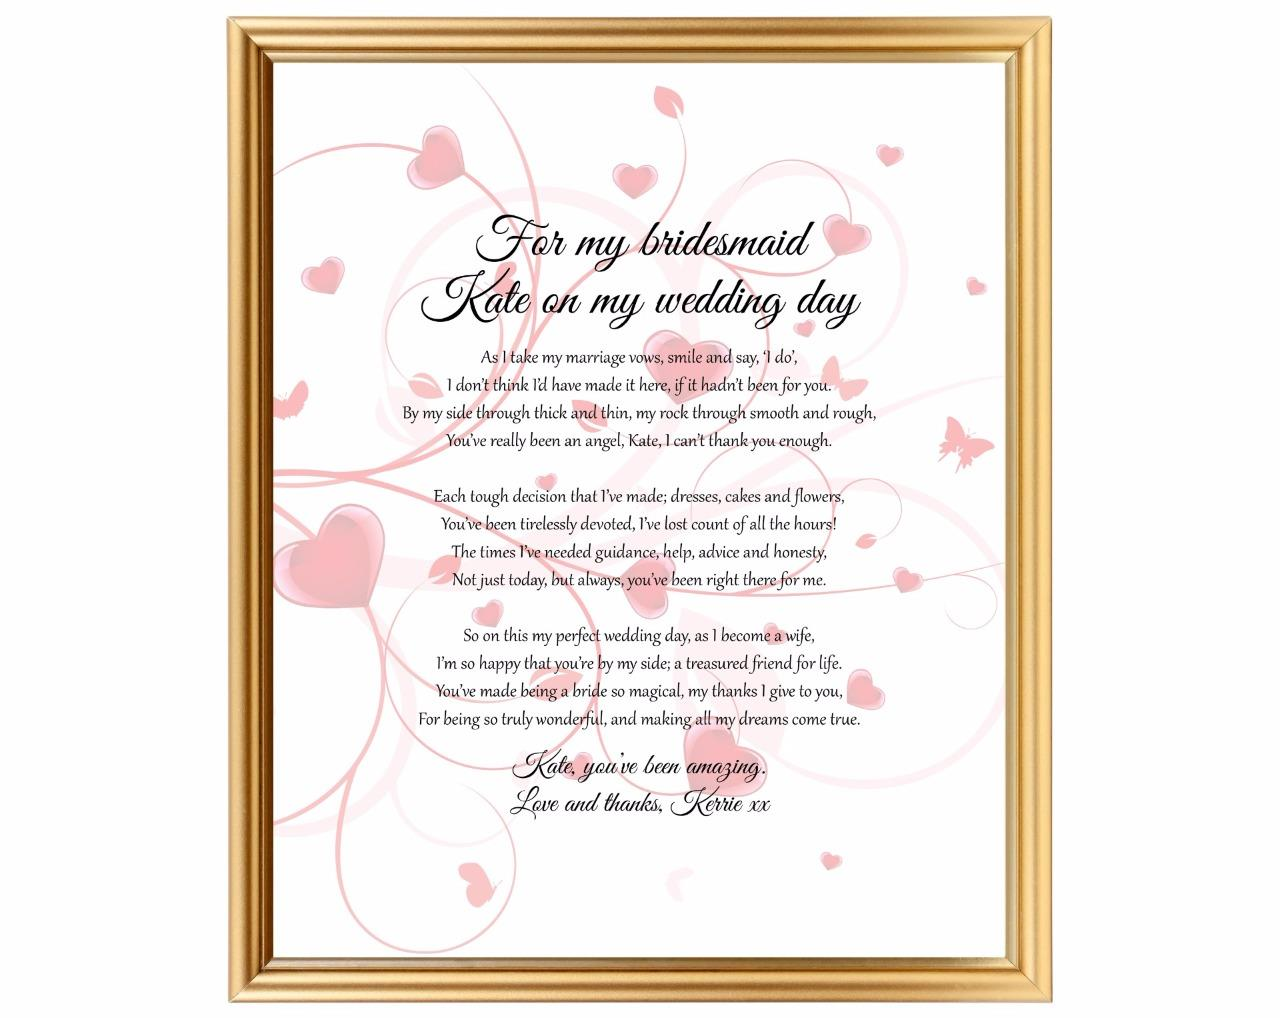 Gift For Best Friend On Wedding Day: Thank You For Being My Bridesmaid